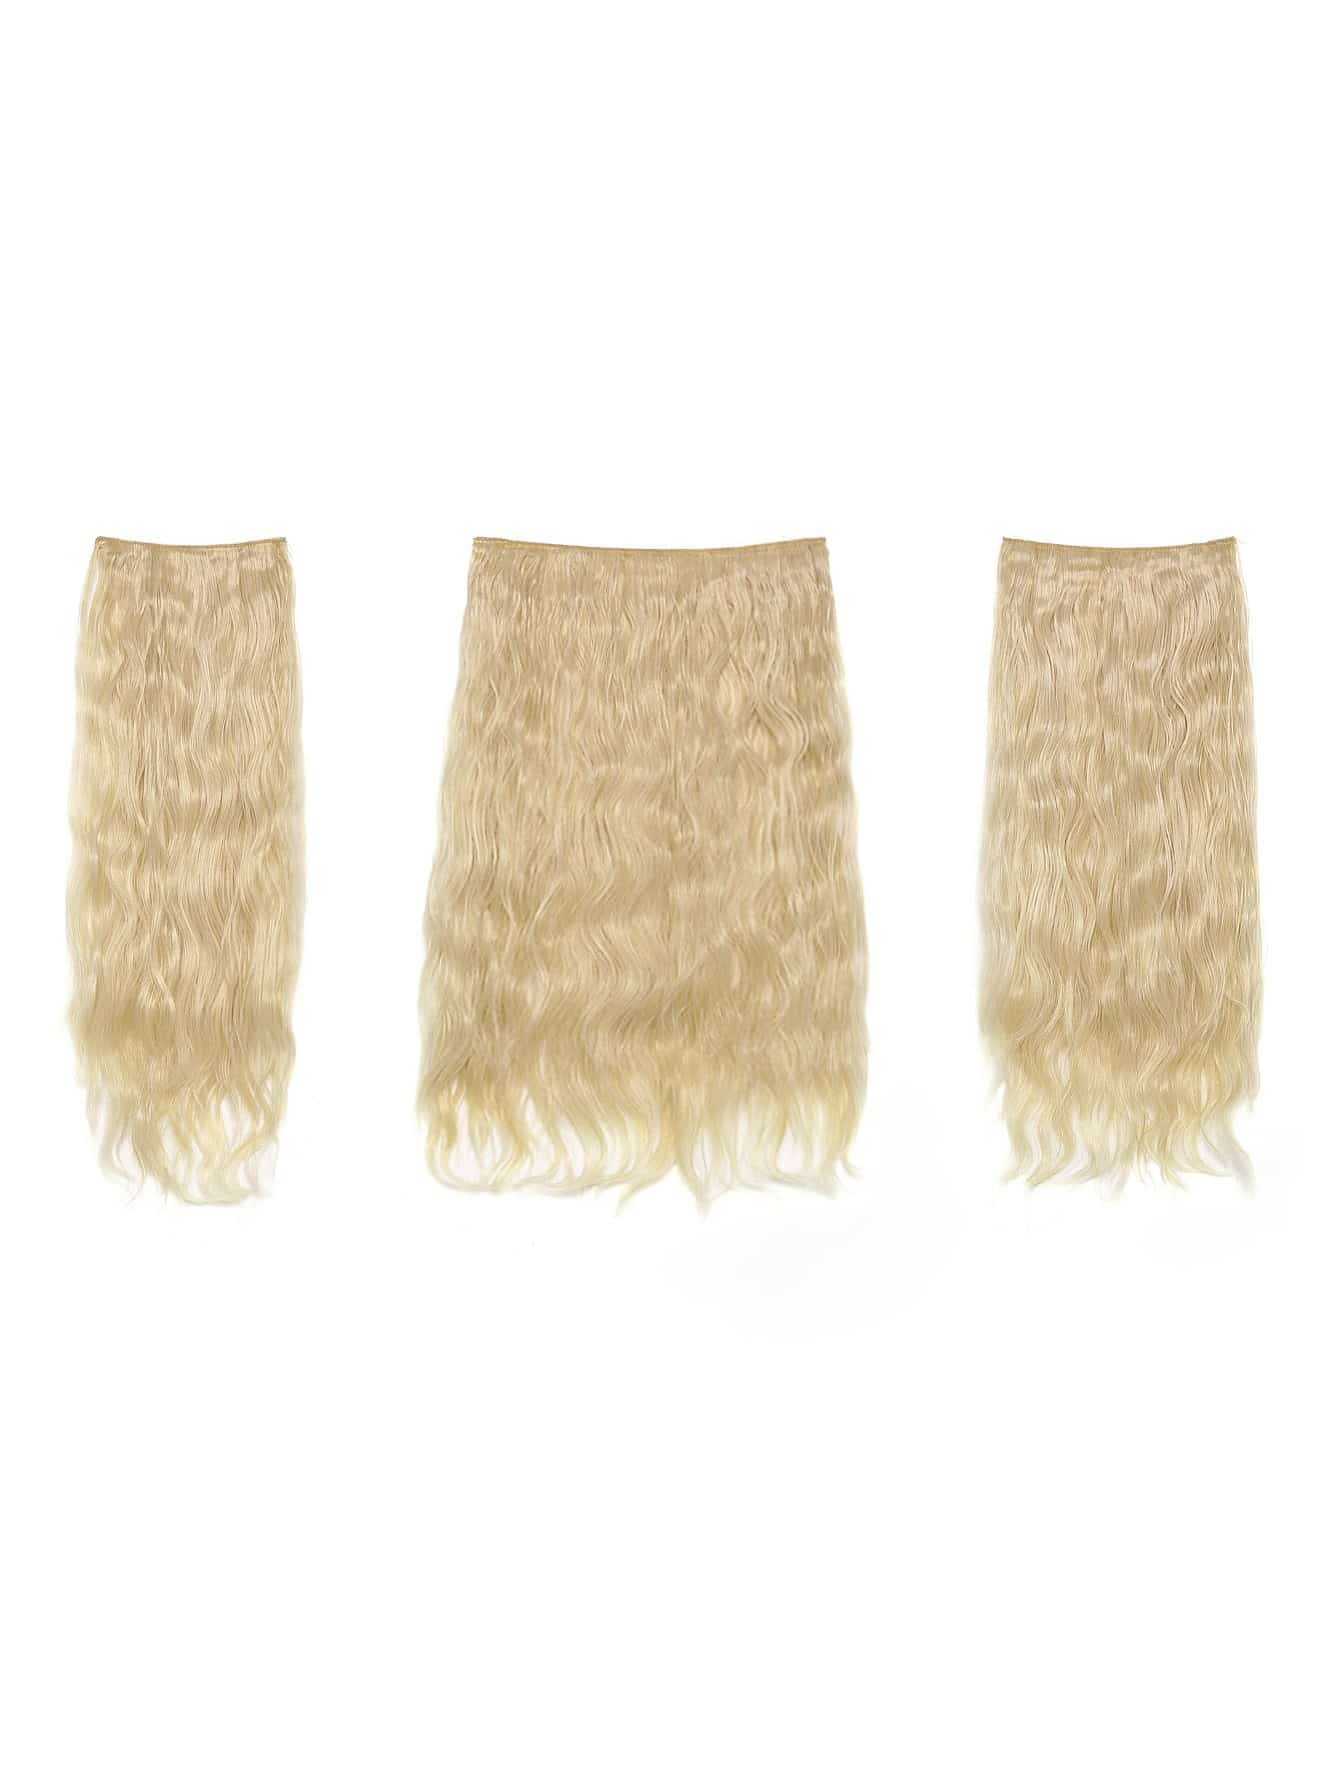 Light Blonde Clip In Curly Hair Extension 3pcs